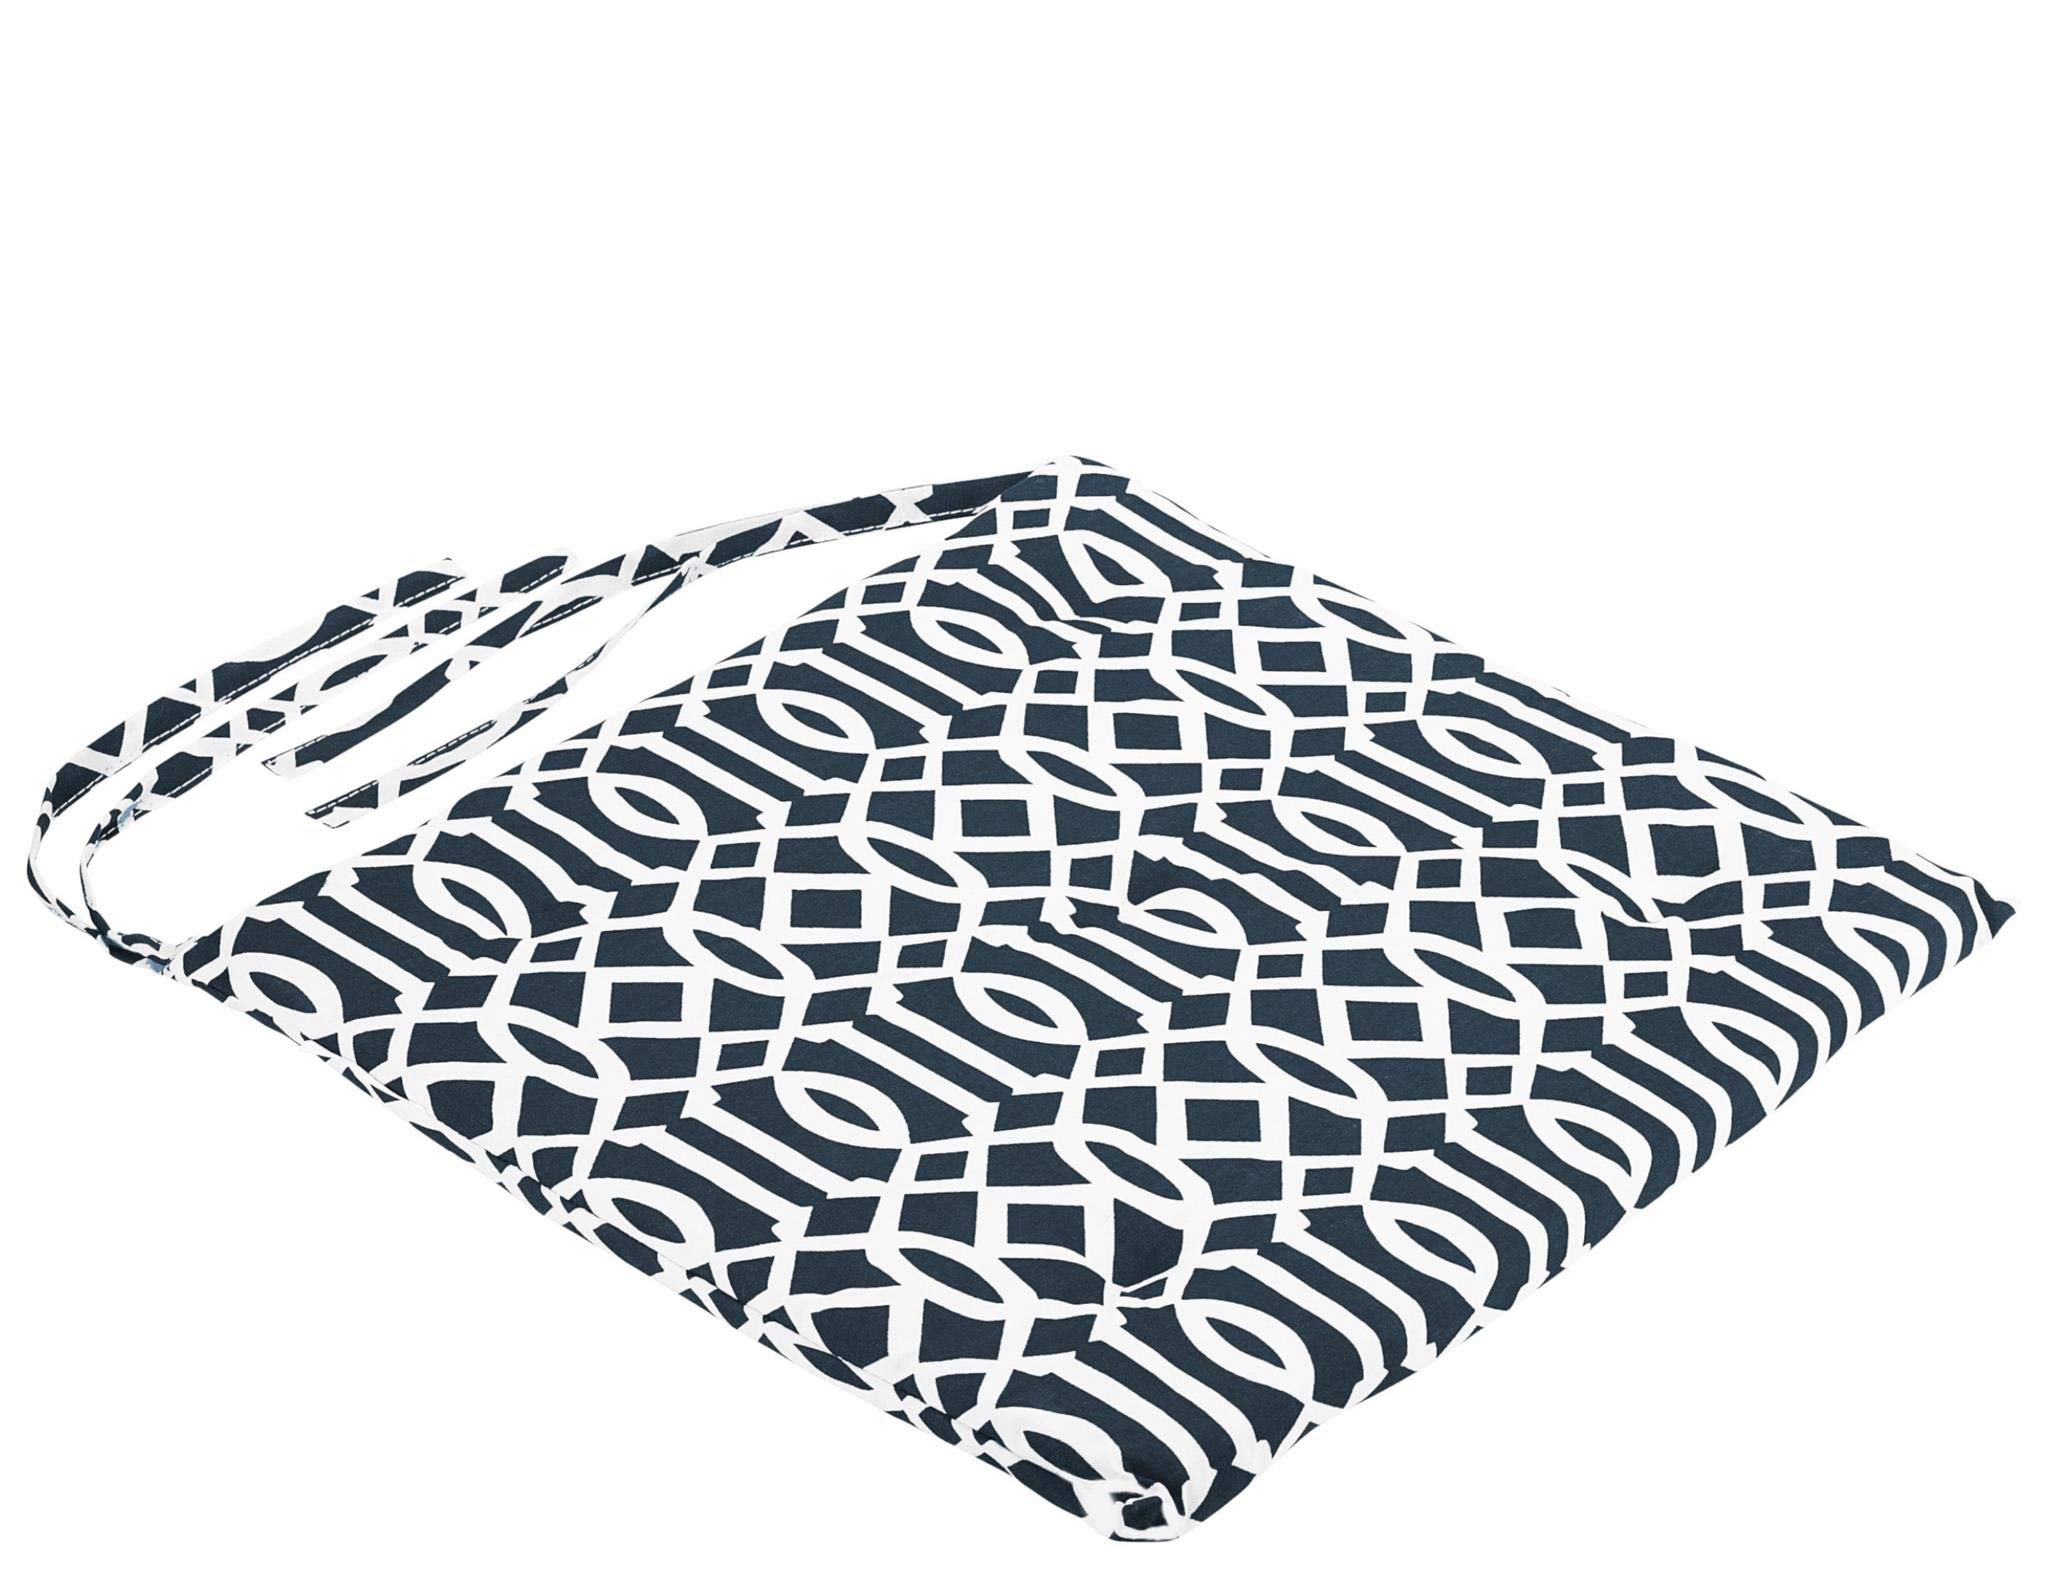 DecorRack 4 Seat Cushion Pads 100% Cotton Cover with Ties, Ideal Chair Pad for Indoor, Reversible Square Kitchen Seat Cover Chair Pillows, Modern Dark Navy White Design 1 inch Lightweight (Pack of 4)